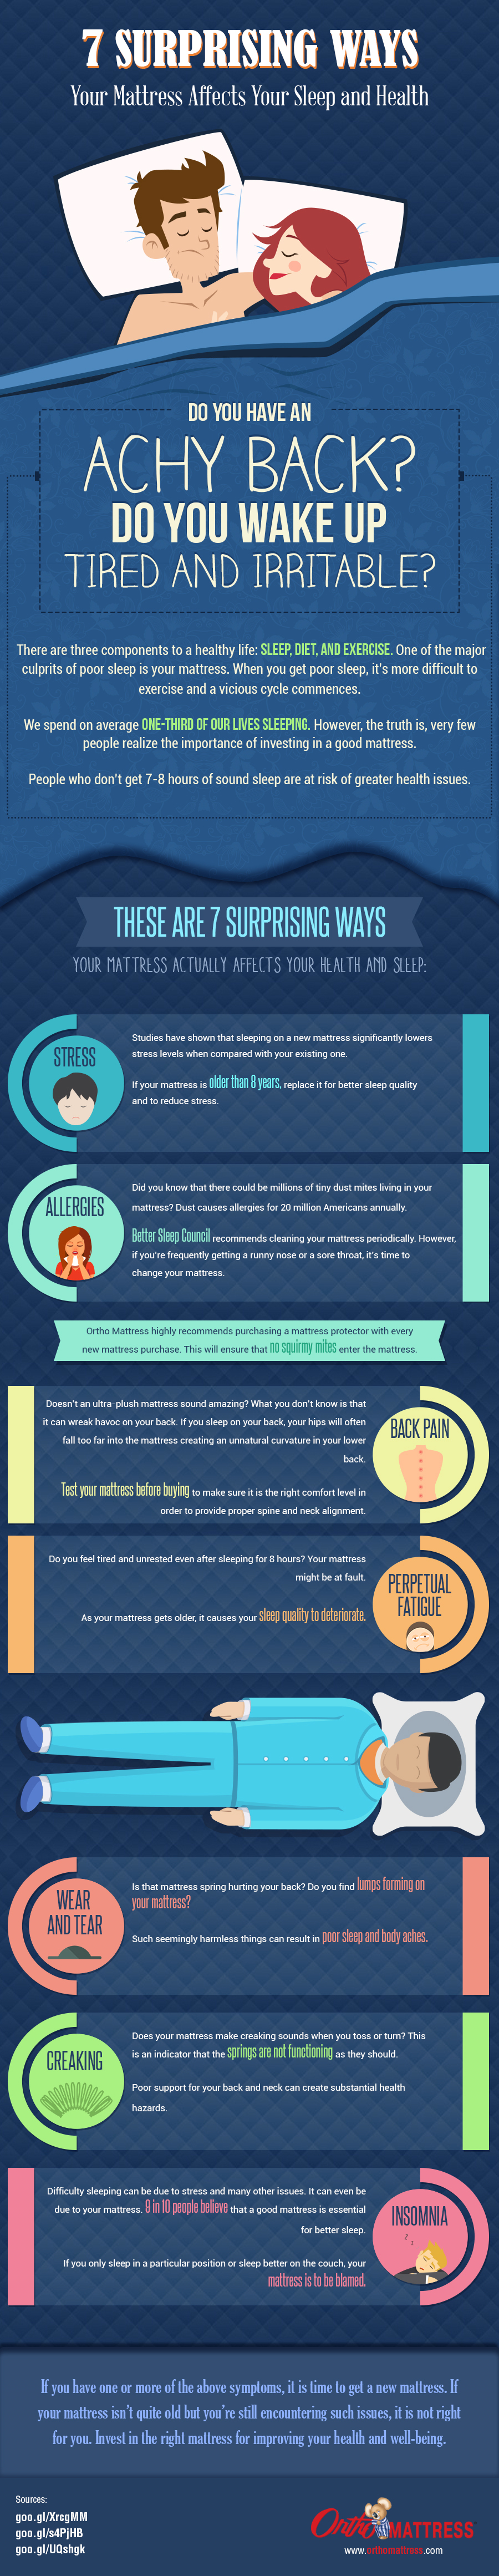 7-Surprising-Ways-Your-Mattress-Affects-Your-Sleep-and-Health